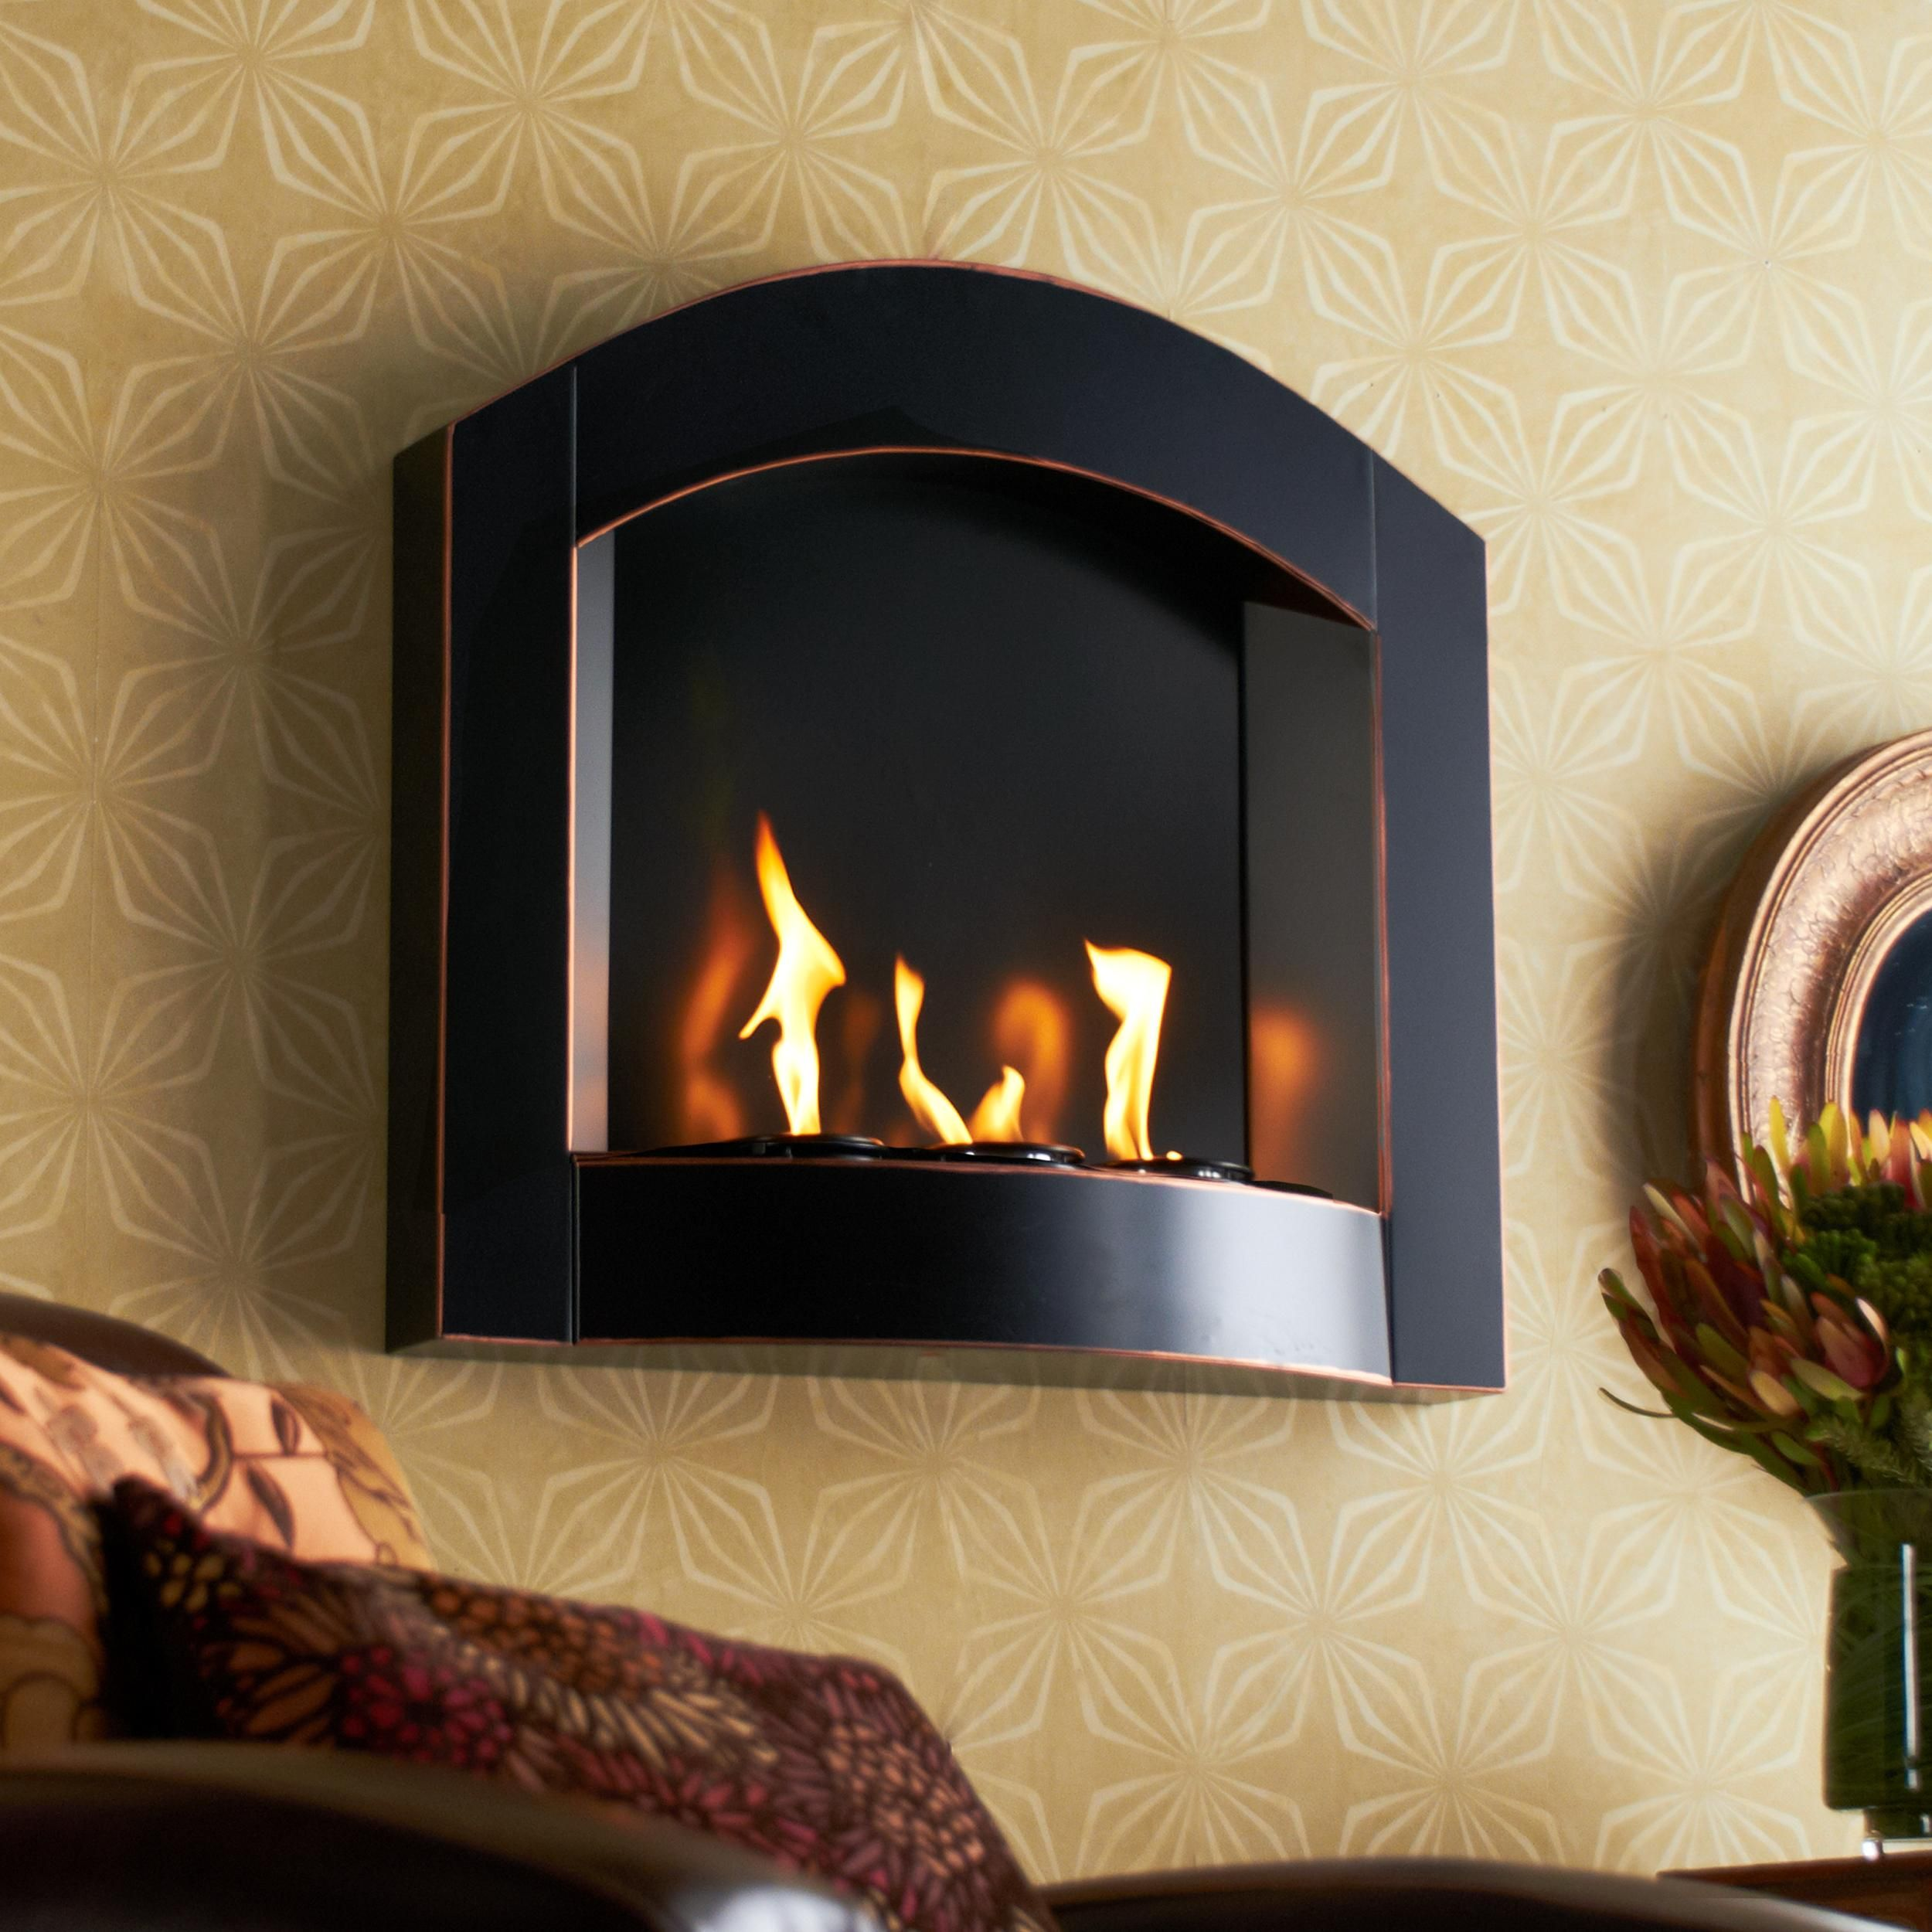 Amazon Com Sei Black Arch Top Wall Mount Gel Fuel Fireplace